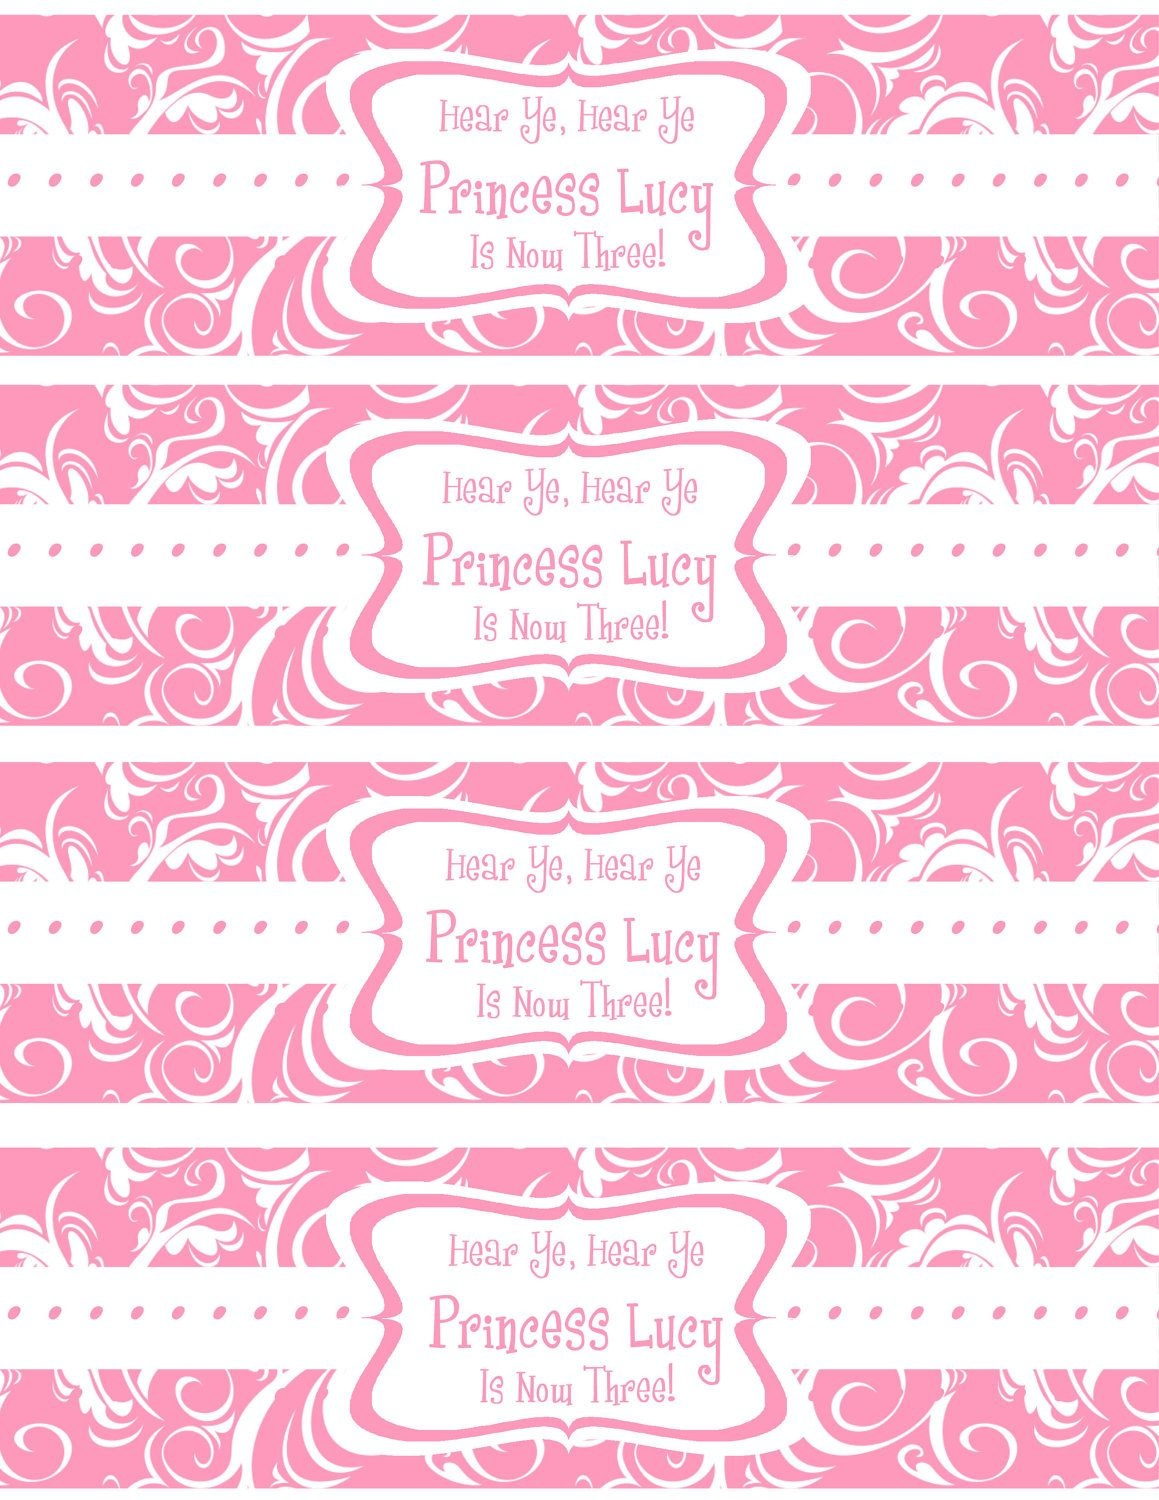 Free Printable Water Bottle Labels Template   Kreatief   Water - Free Printable Water Bottle Labels For Baby Shower